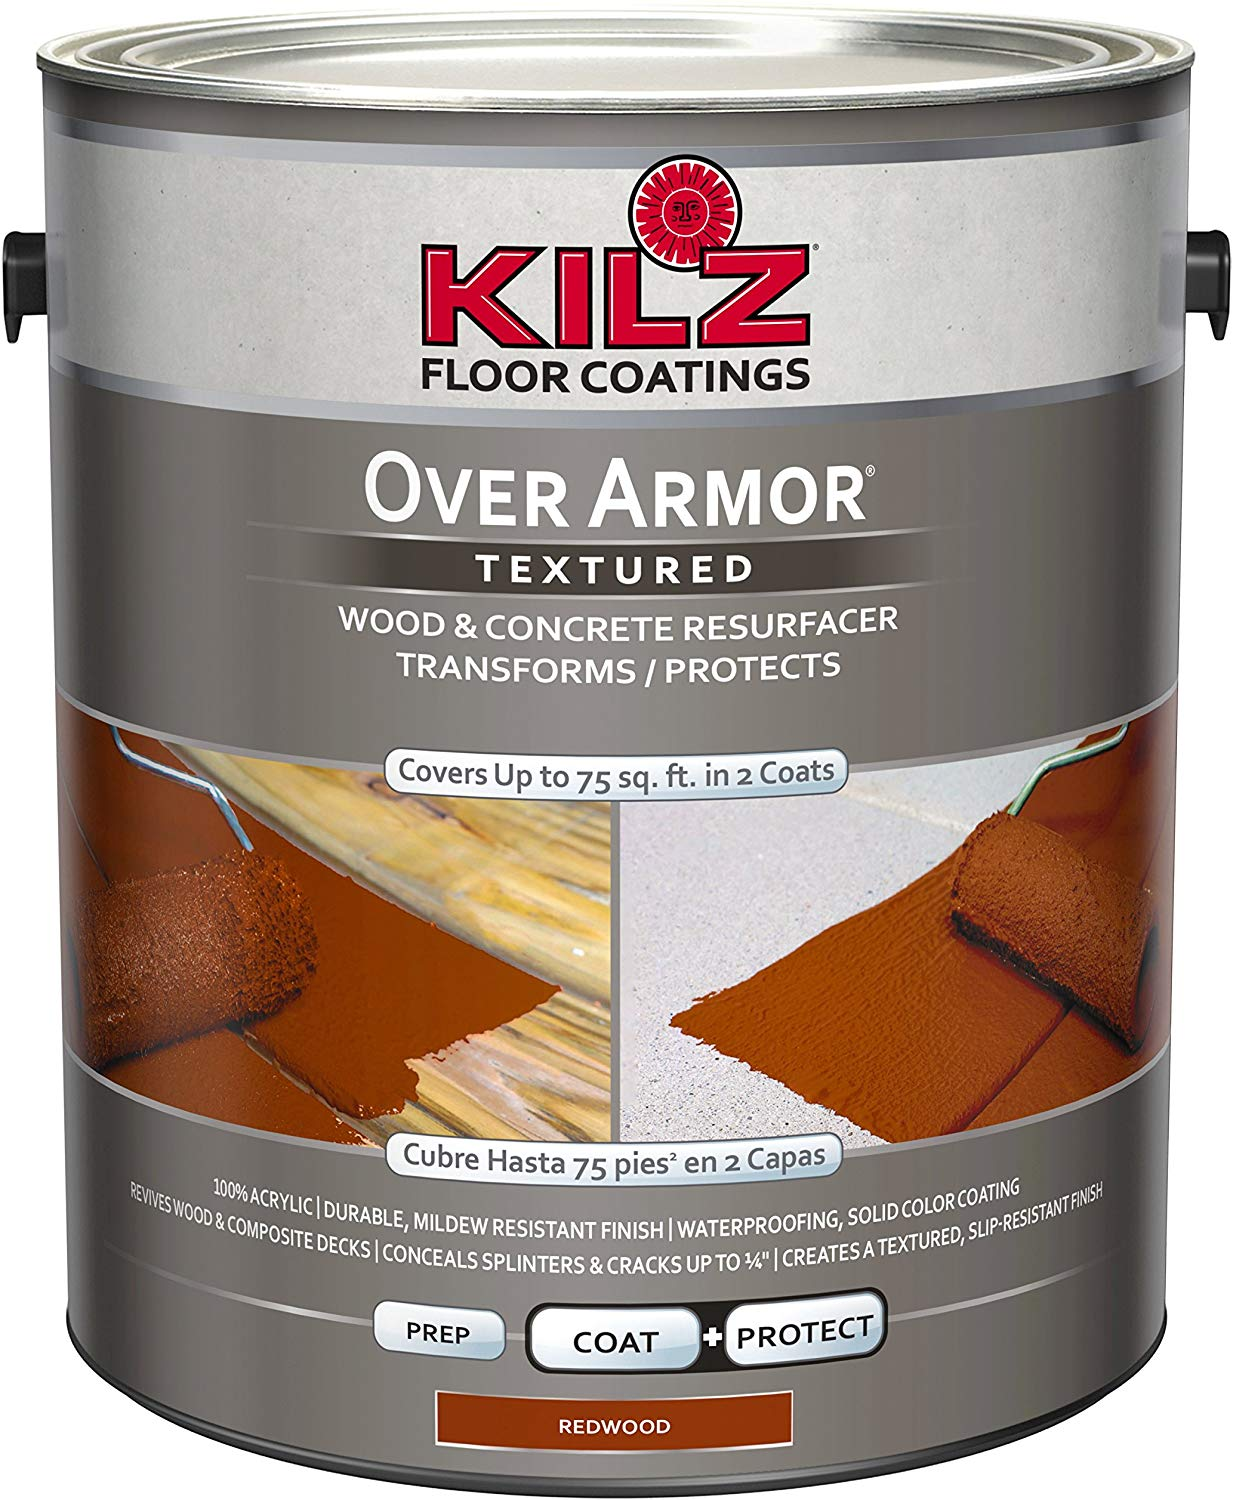 KILZ Over Armor Textured Wood/Concrete Coating review